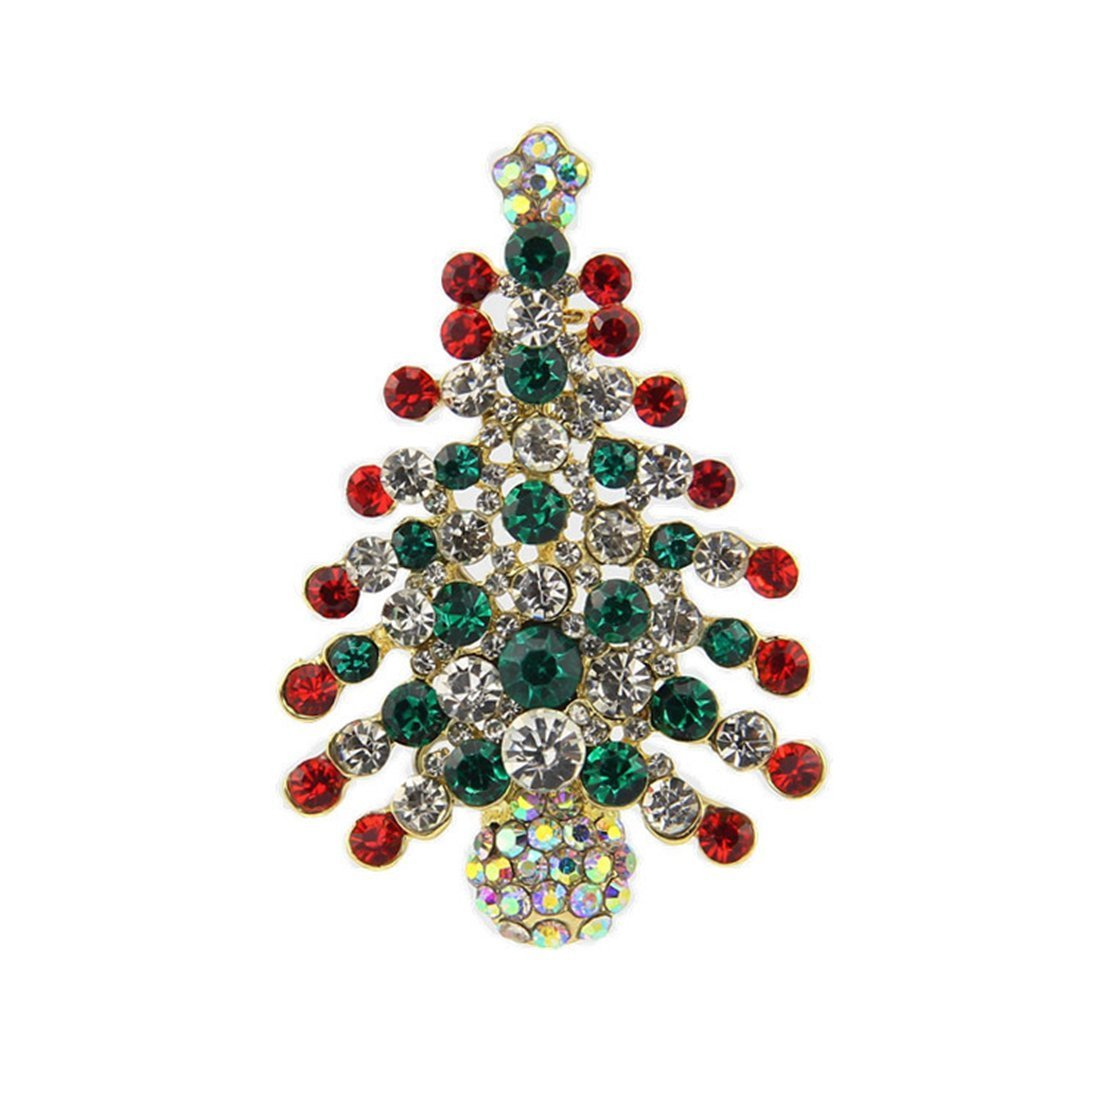 YaptheS Exquisite Christmas Tree Brooch Fashion Multi-color Crystal Xmas Tree Alloy Pin for Women and Girls Christmas Brooch Pins Xmas Tree Art Crafts Pattern Crystal Rhinestones Beautiful jewelry Adjustable